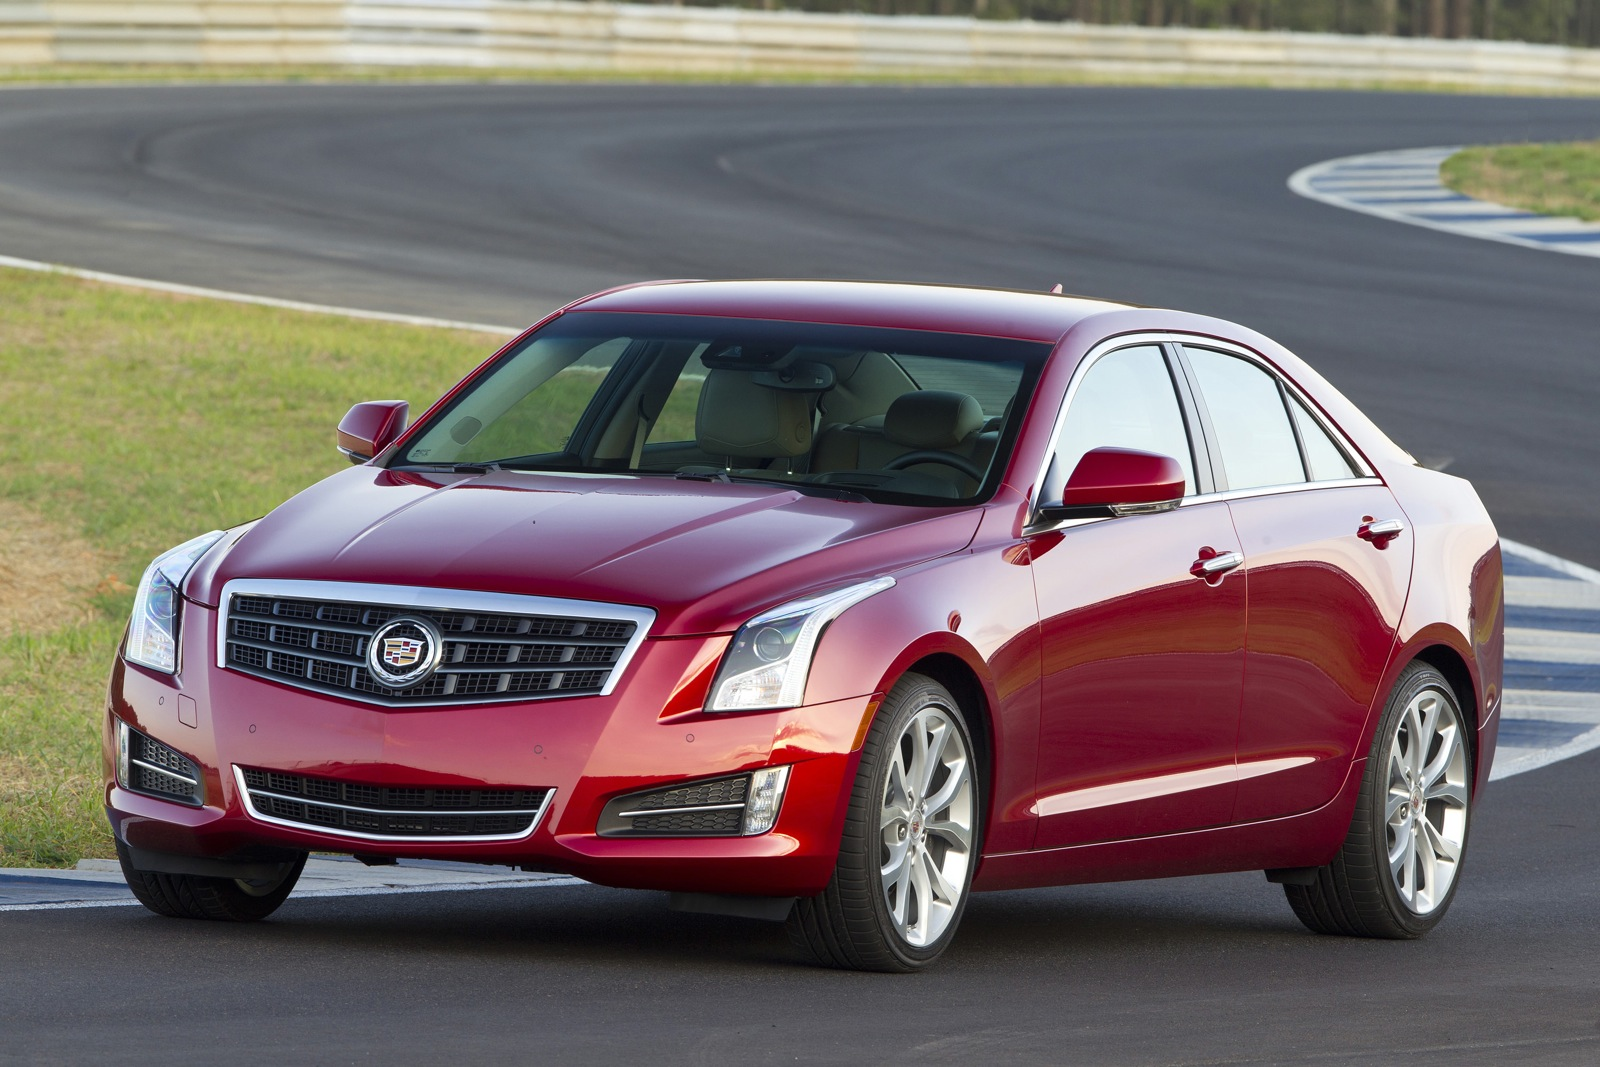 cadillac review ats of the luxury premium simply is notes car autoweek article divine reviews collection interior